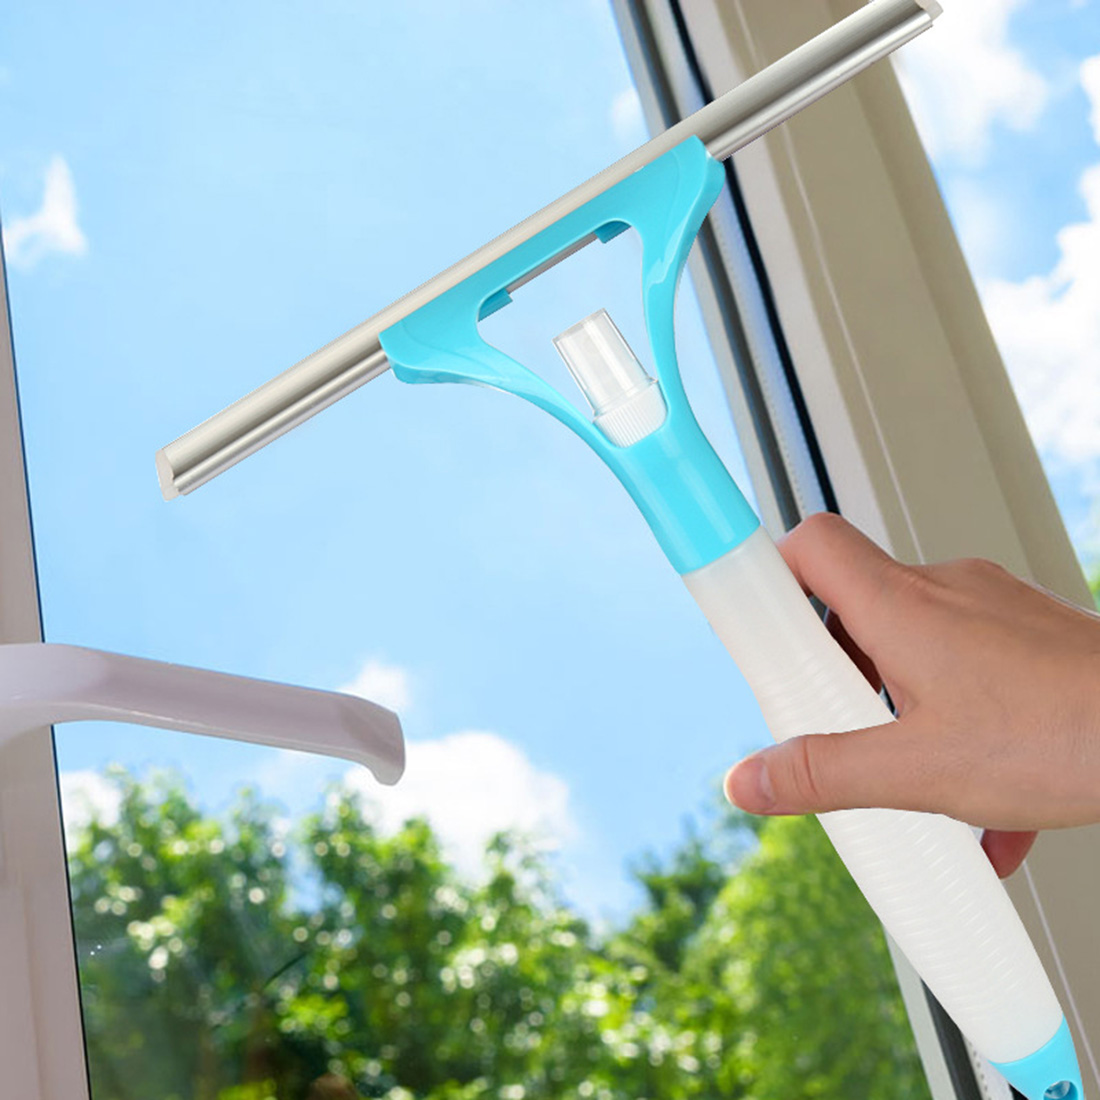 How to clean house windows - House Useful Washing Brush Magic Spray Type Cleaning Brush Glass Wiper Window Clean Shave Glass Sponge